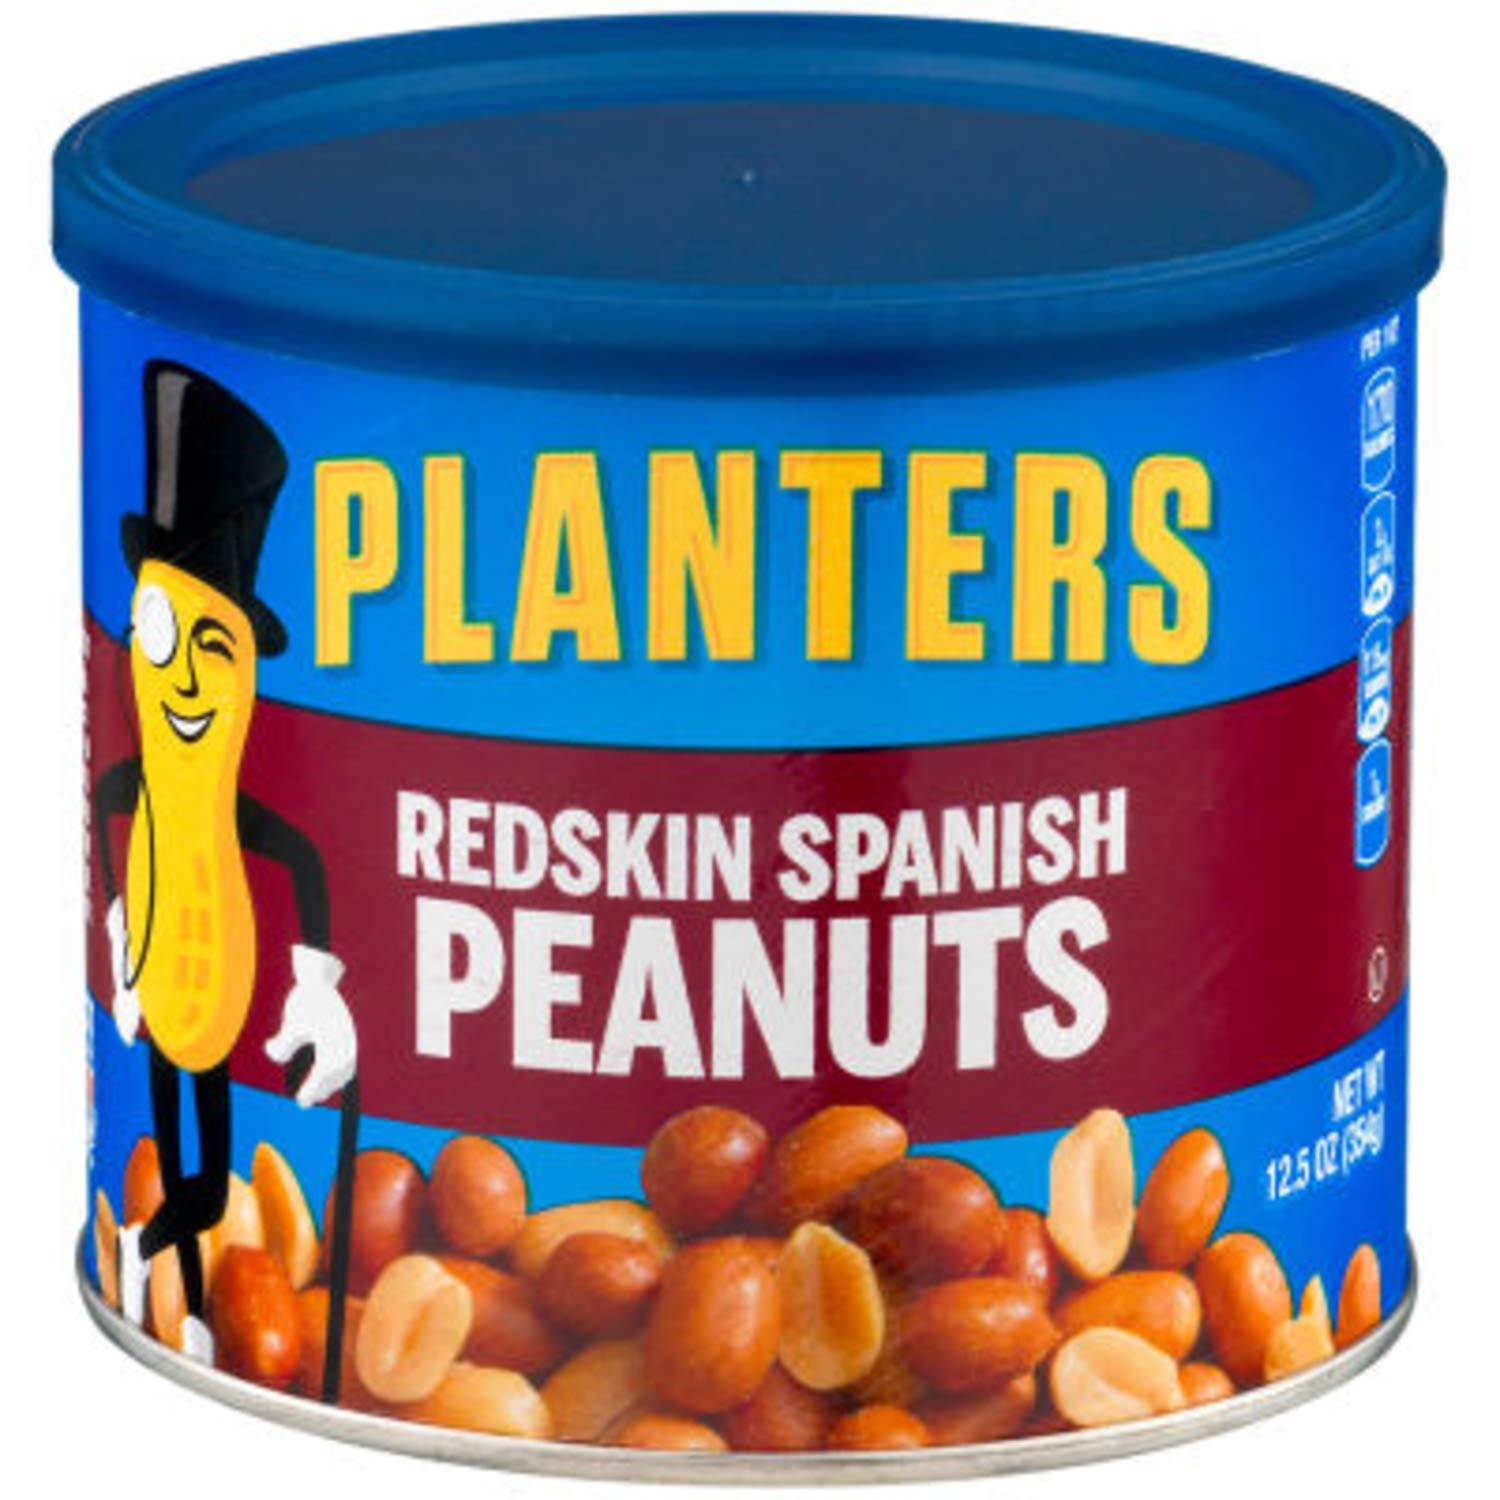 Planters Redskin Spanish Peanuts Sea Salt, 12.5 OZ (Pack of 6) by Kraft by Planters (Image #2)